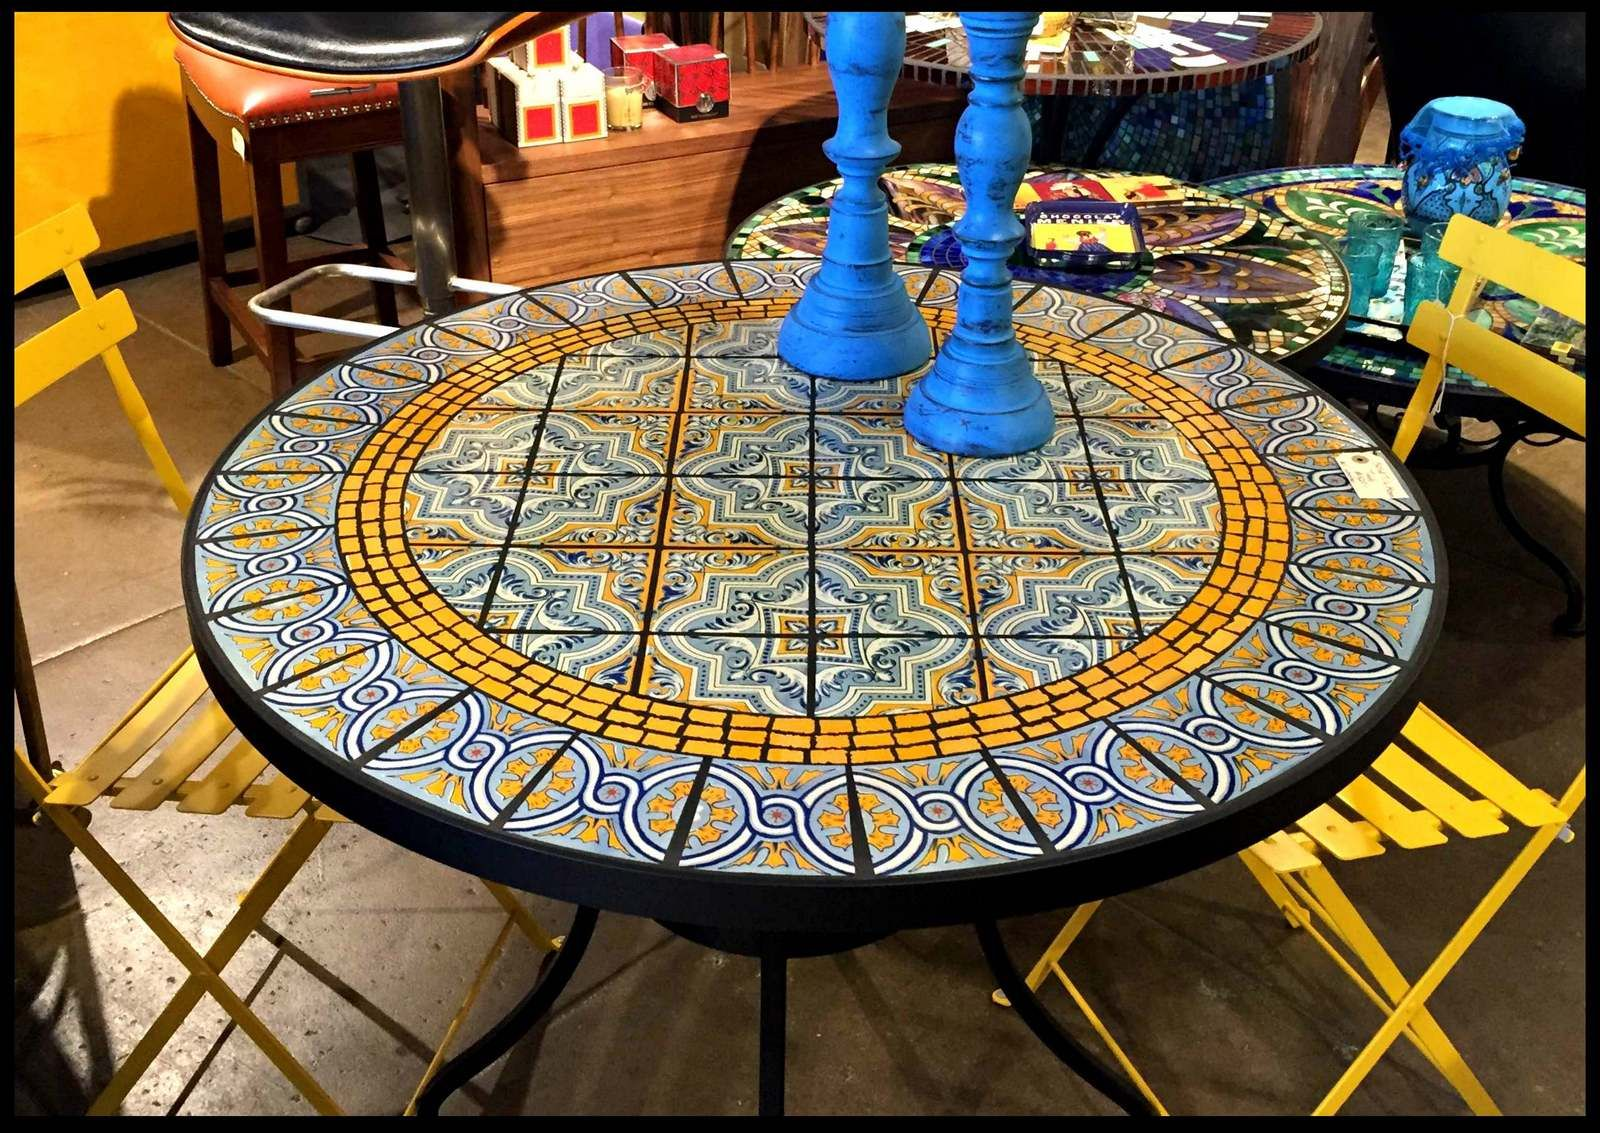 Tile and Glass Mosaic Tables   Mosaic tile designs, Mosaic ...